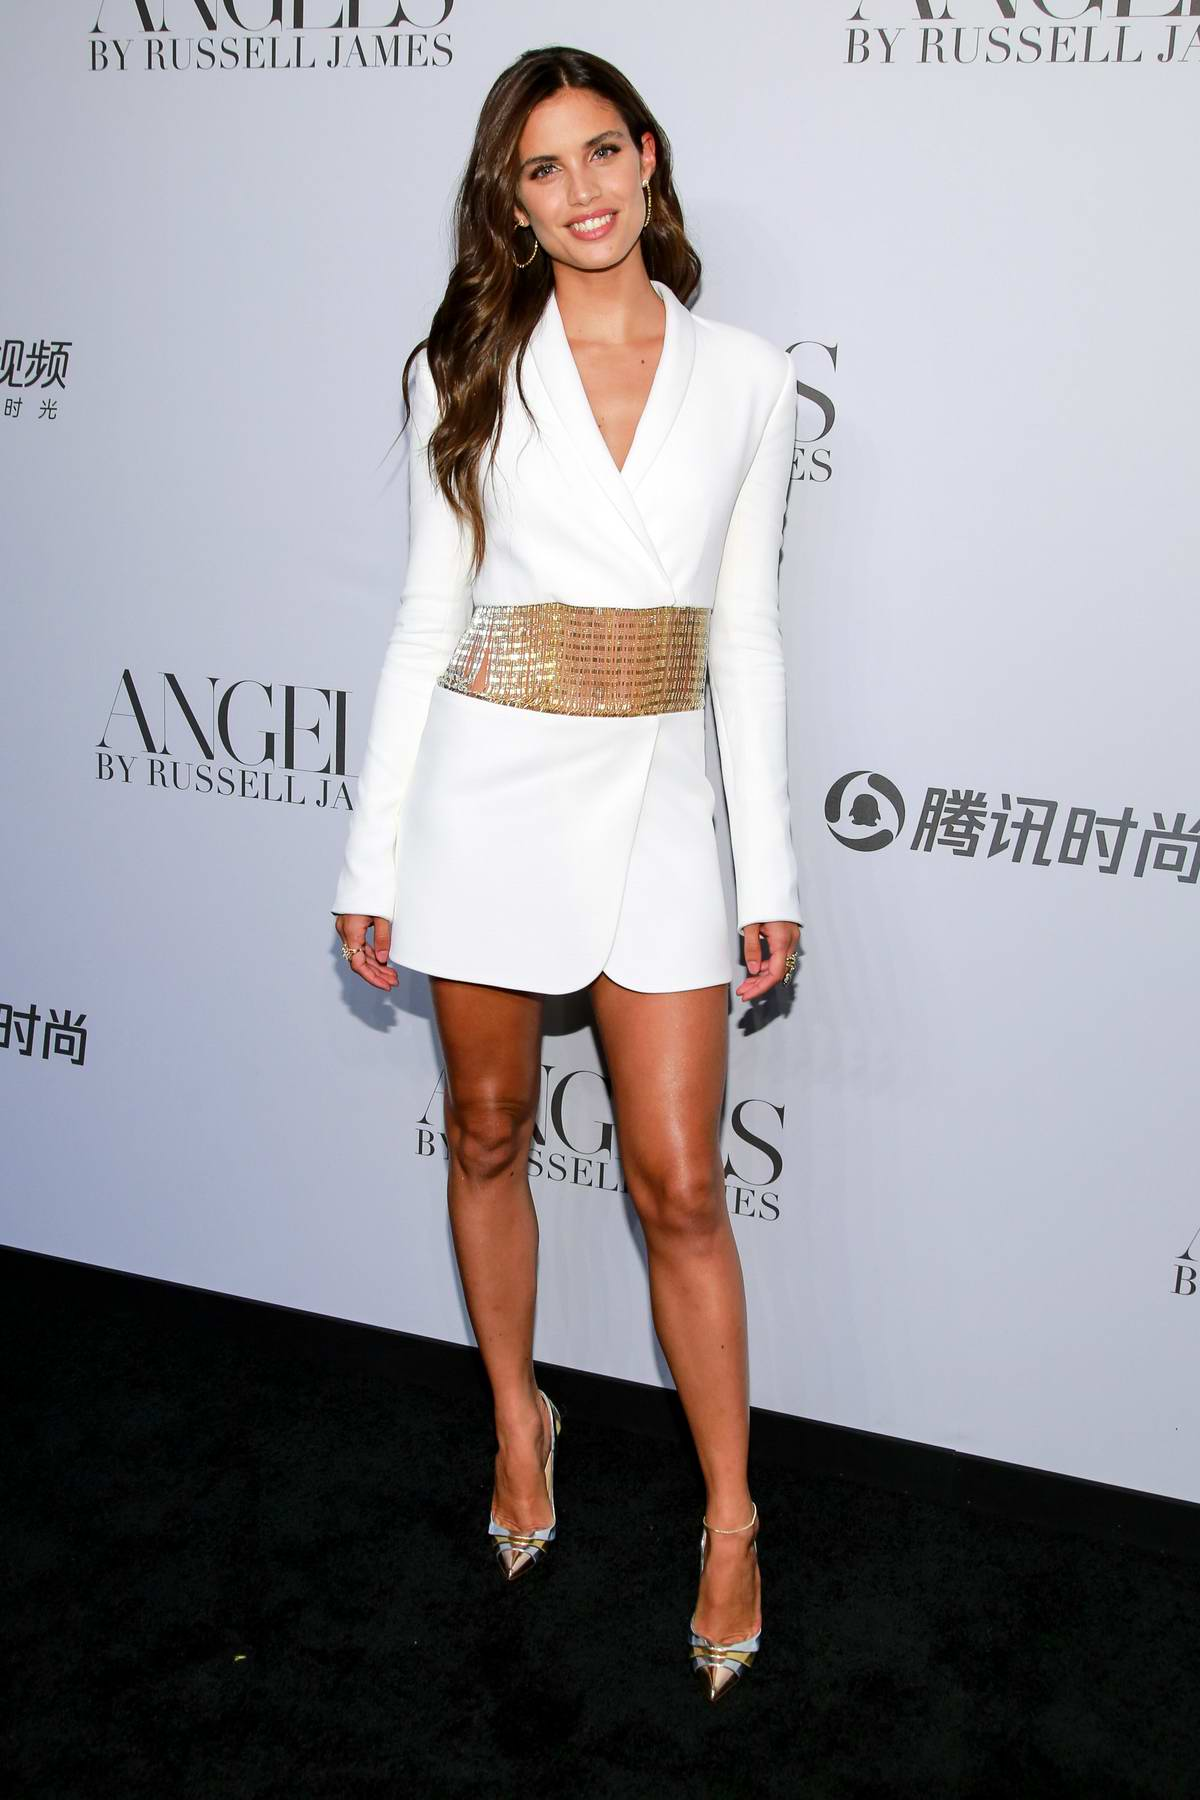 Sara Sampaio attends 'ANGELS' by Russell James Book Launch And Exhibit in New York City